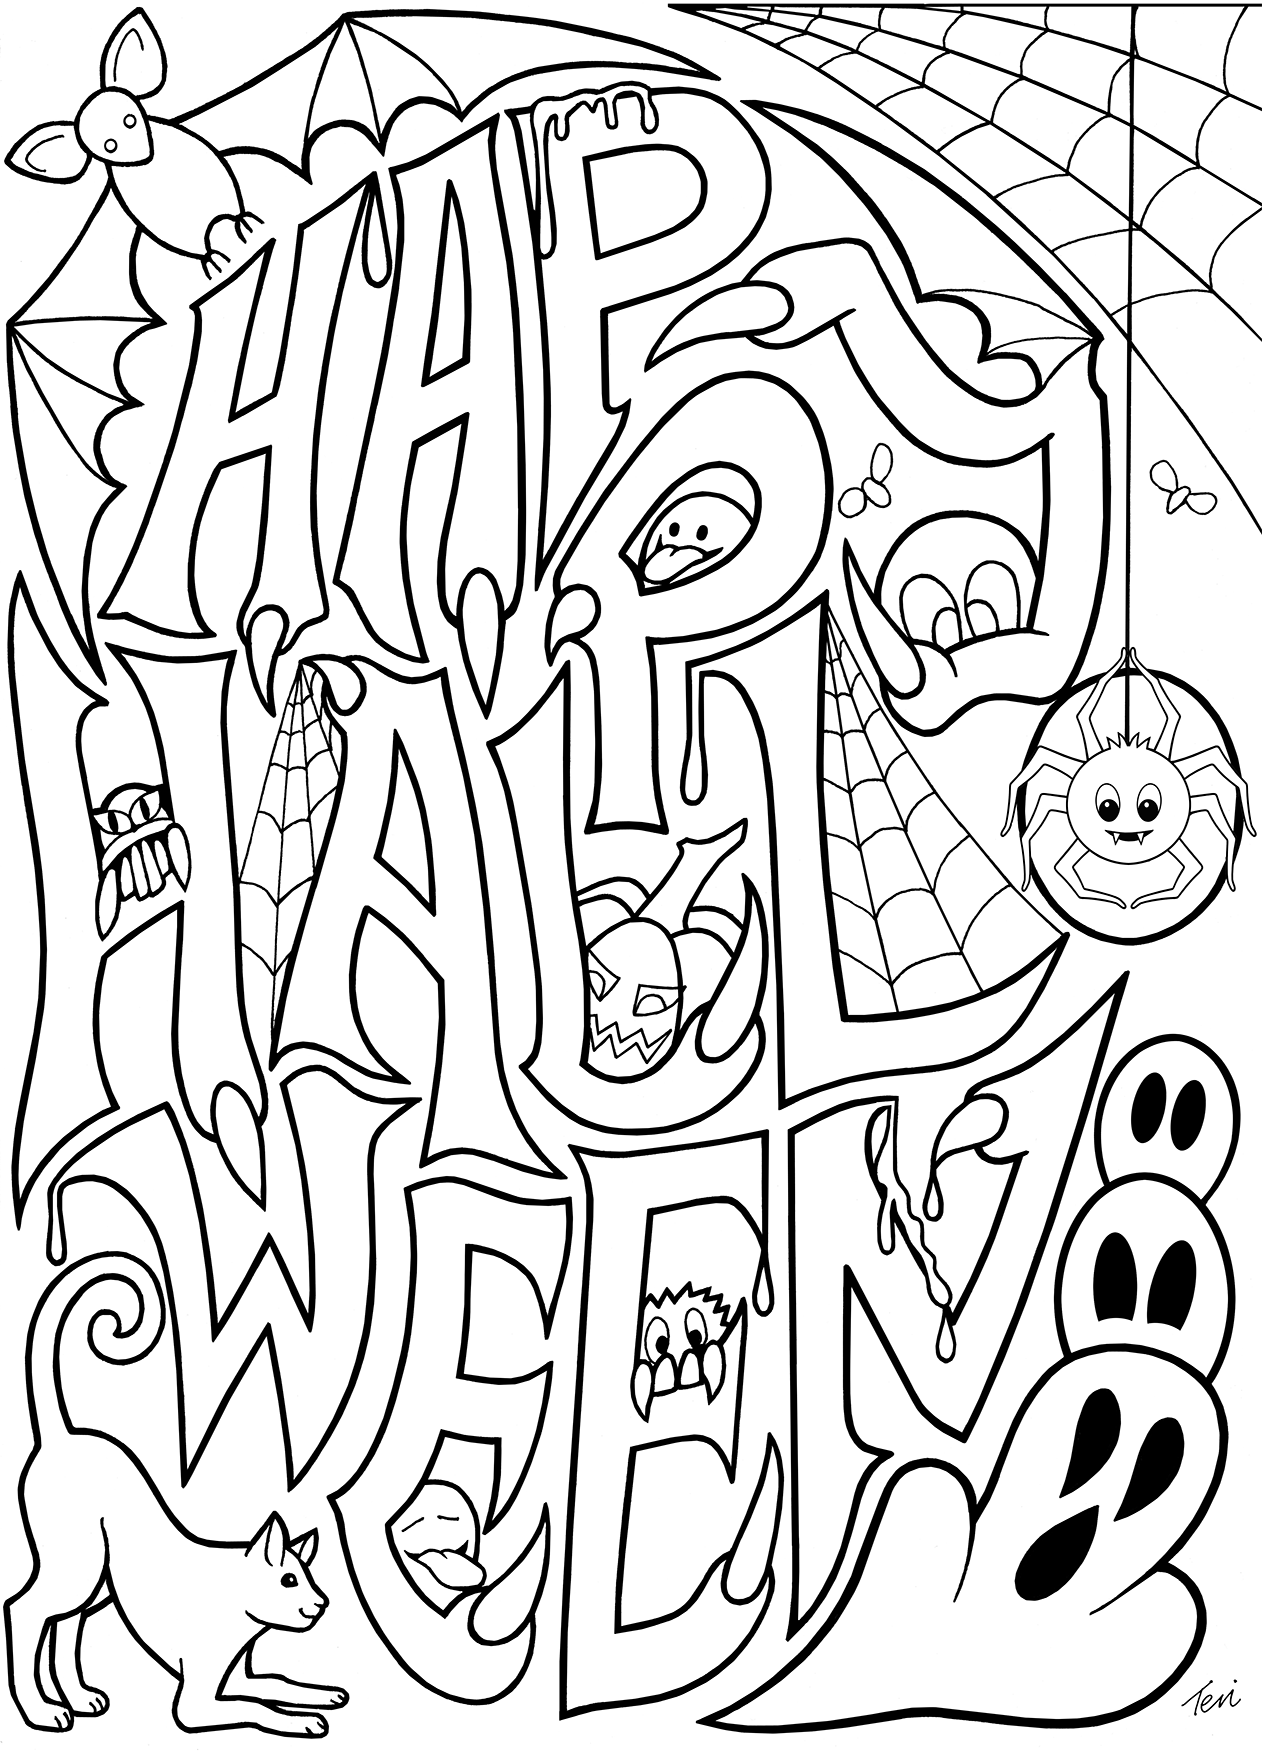 This is a picture of Simplicity Coloring Pages Halloween Printable